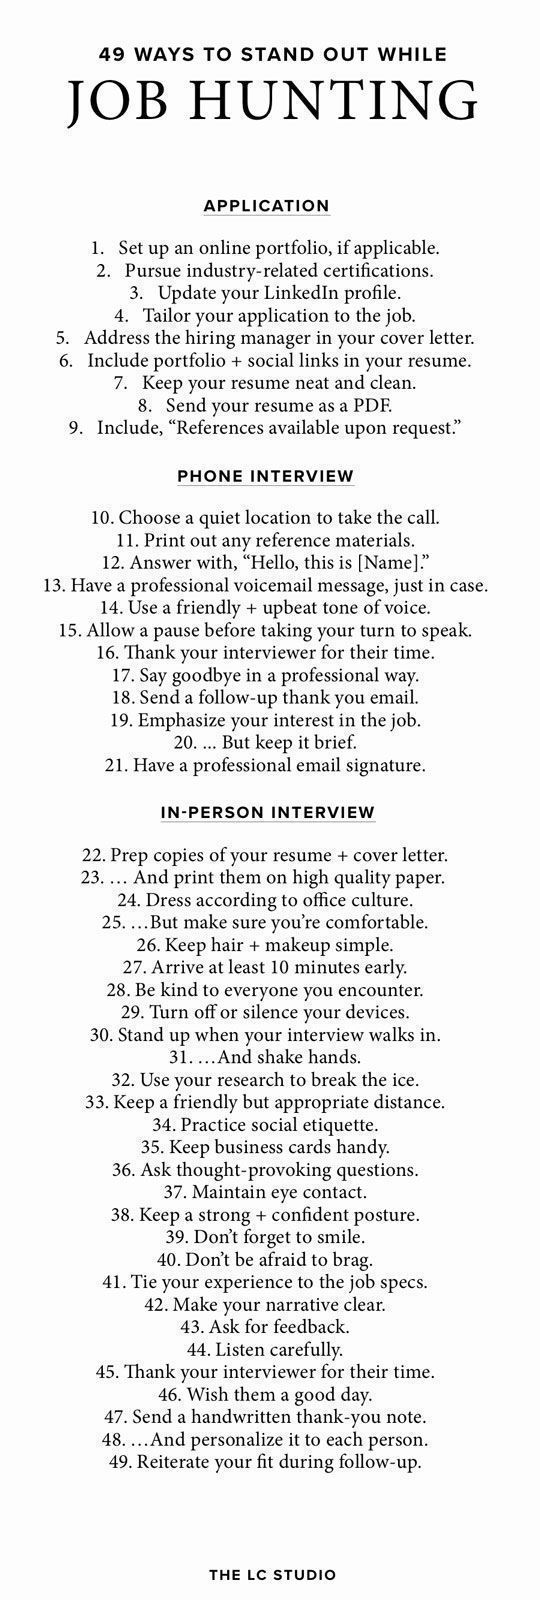 49 Ways To Stand Out During The Interview Process